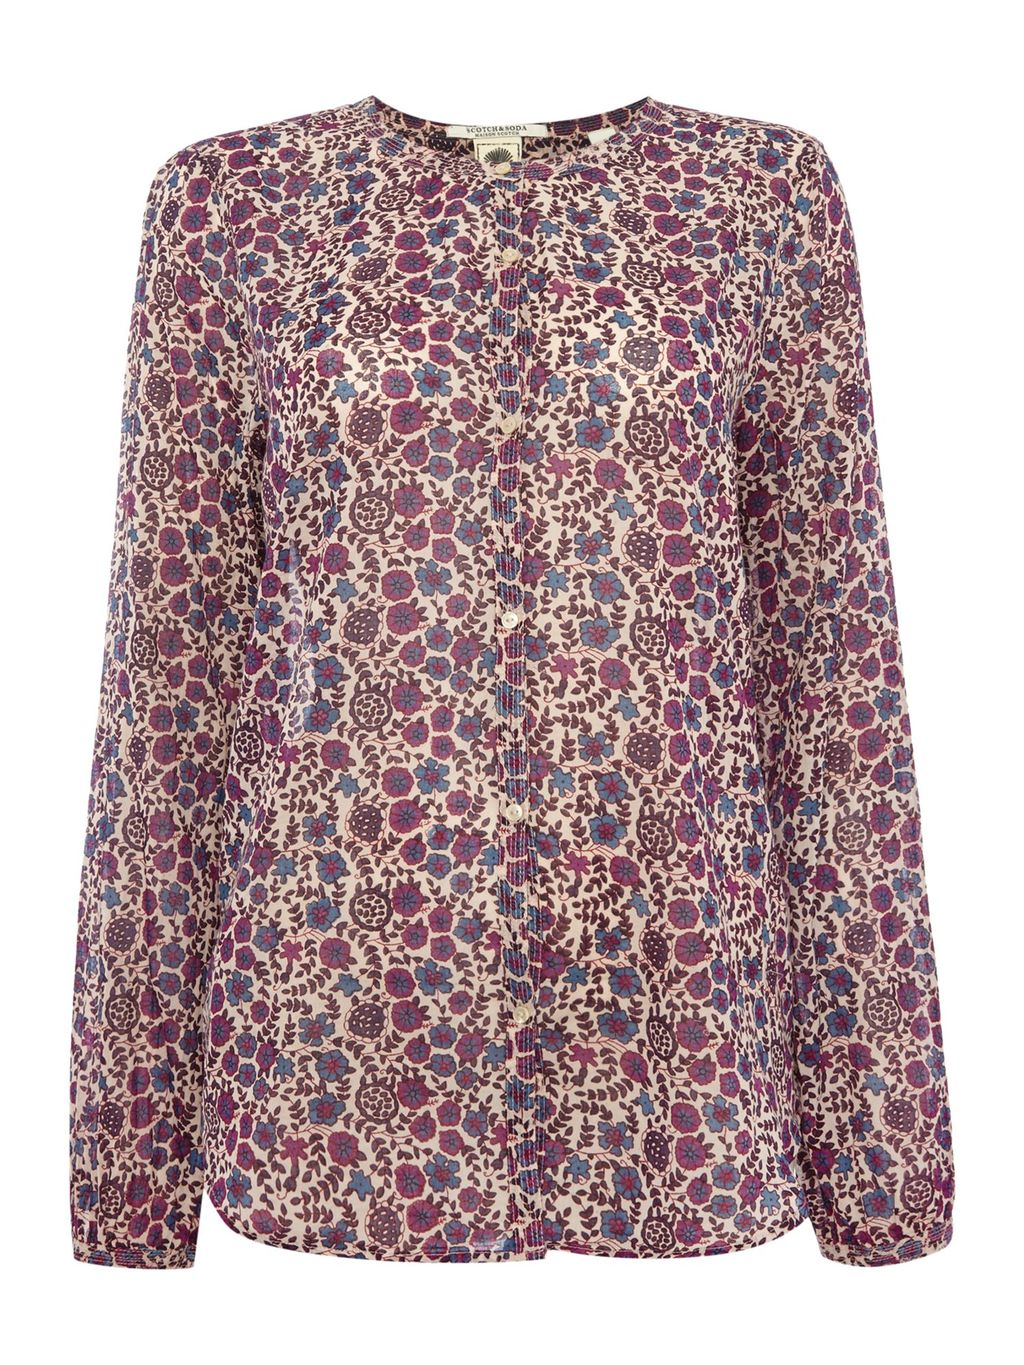 Floral Printed Cotton Shirt, Purple - style: shirt; secondary colour: ivory/cream; occasions: casual; length: standard; fibres: cotton - 100%; fit: body skimming; neckline: crew; sleeve length: long sleeve; sleeve style: standard; pattern type: fabric; pattern: florals; texture group: woven light midweight; predominant colour: dusky pink; multicoloured: multicoloured; season: s/s 2016